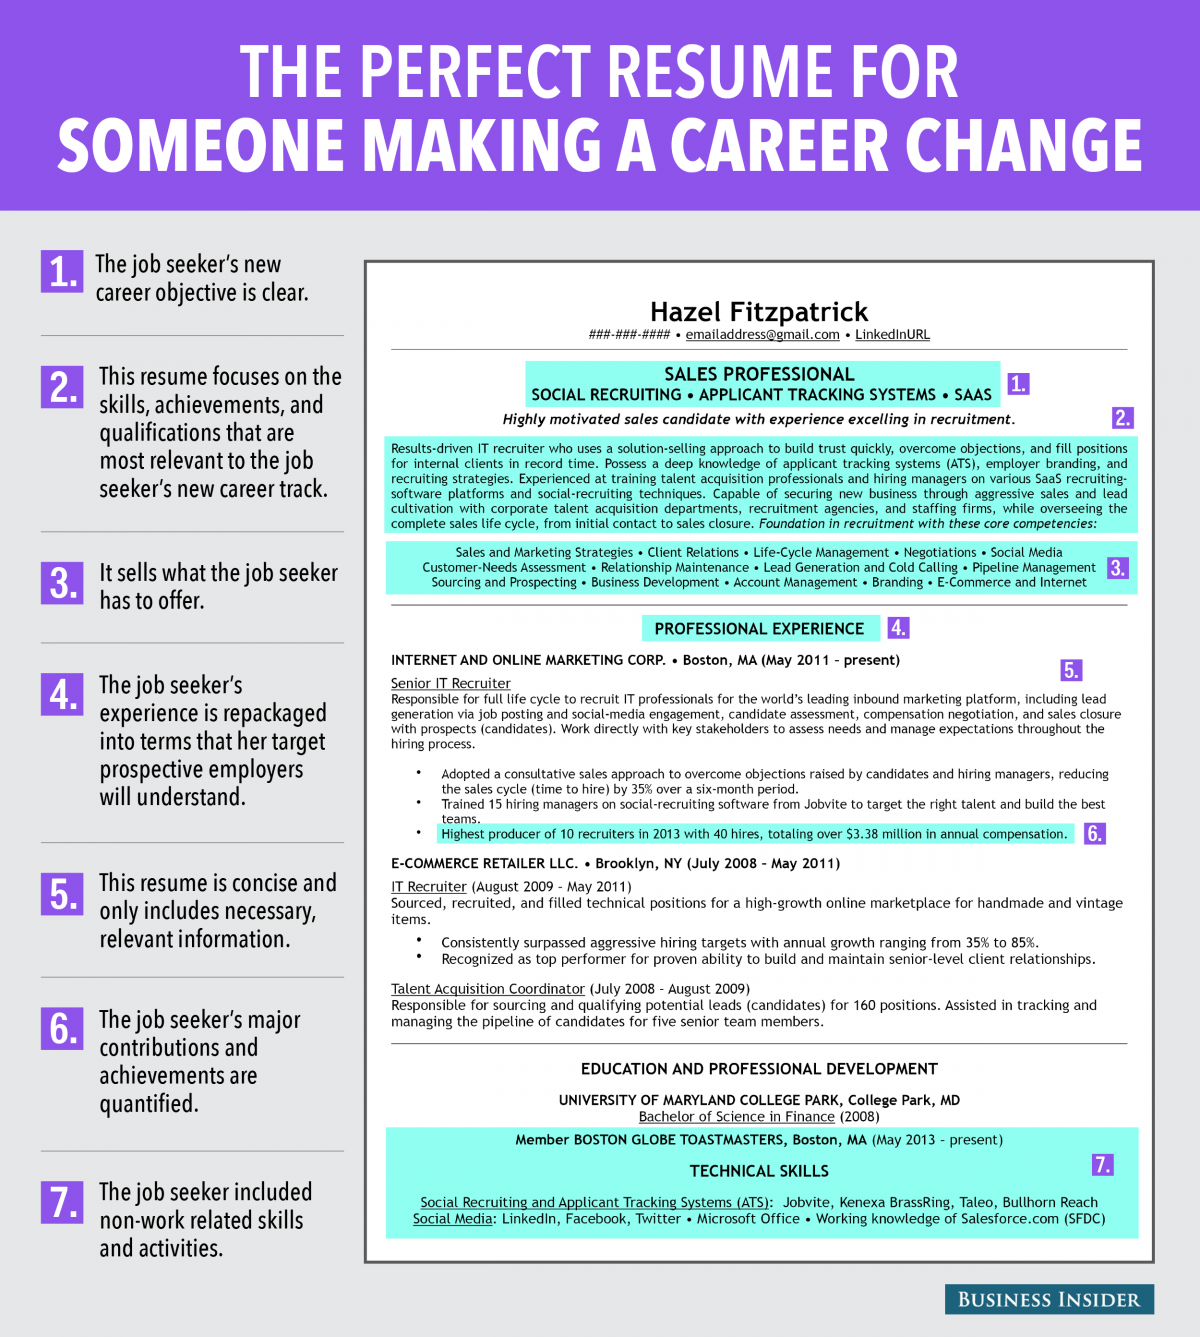 Tips For A Perfect Resume 8 Things You Should Always Include On Your Résumé